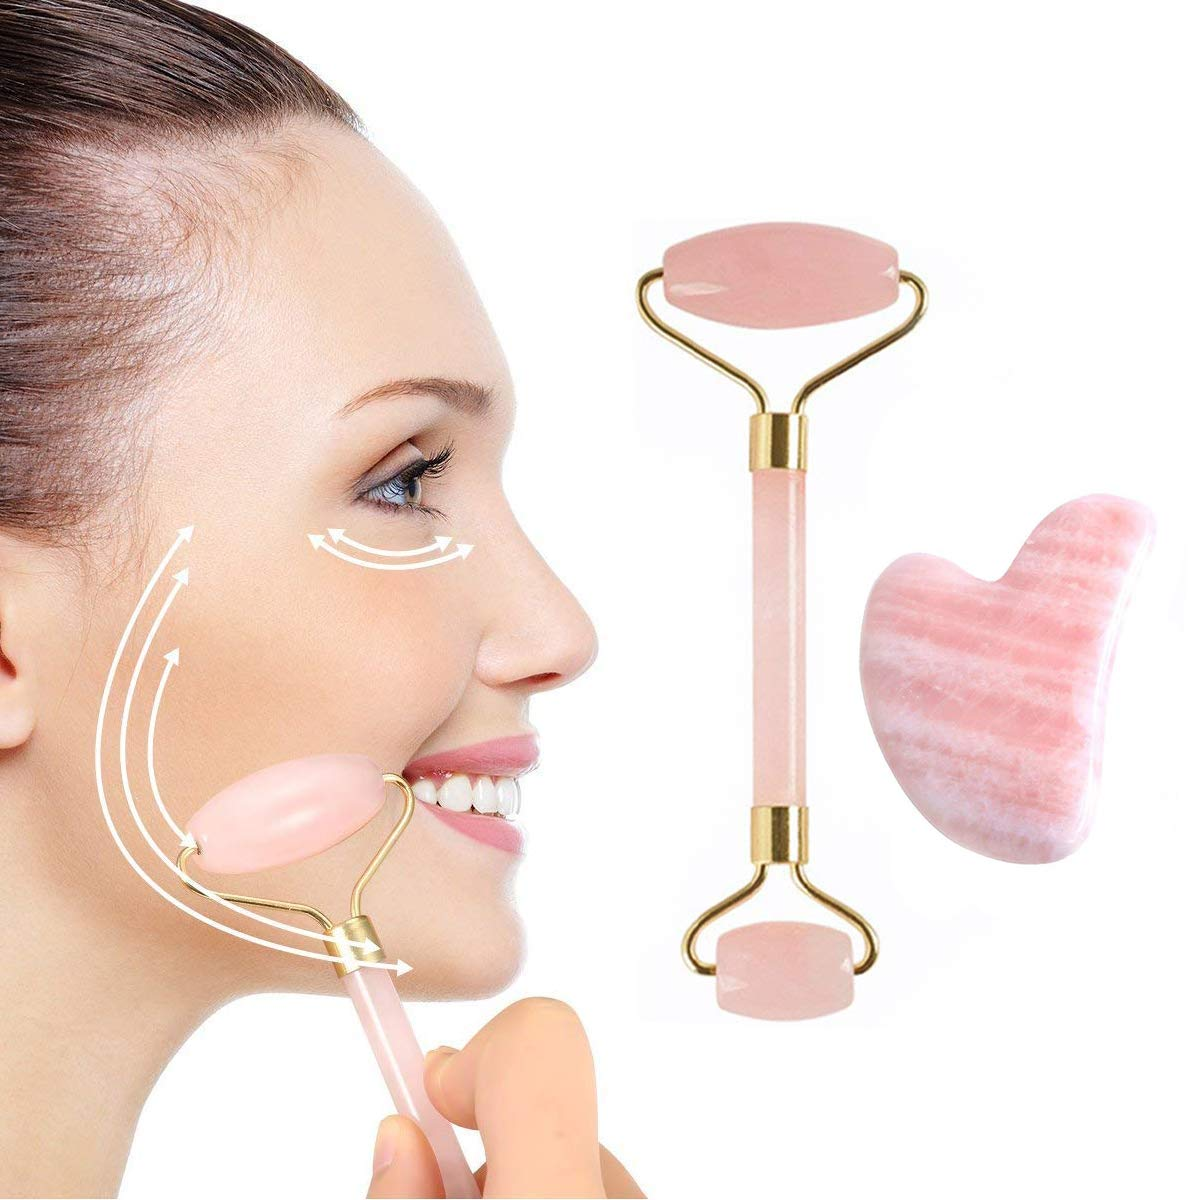 Jade Roller for Face and Gua Sha Massage, Body Relaxation; Real Natural Rose Quartz Stone Facial Massage, Anti-Aging Beauty Skincare Tool to Reduce Dark Circles and Puffy Eyes; Therapy for Wrinkles (Pink(Heart type)) ASANDH